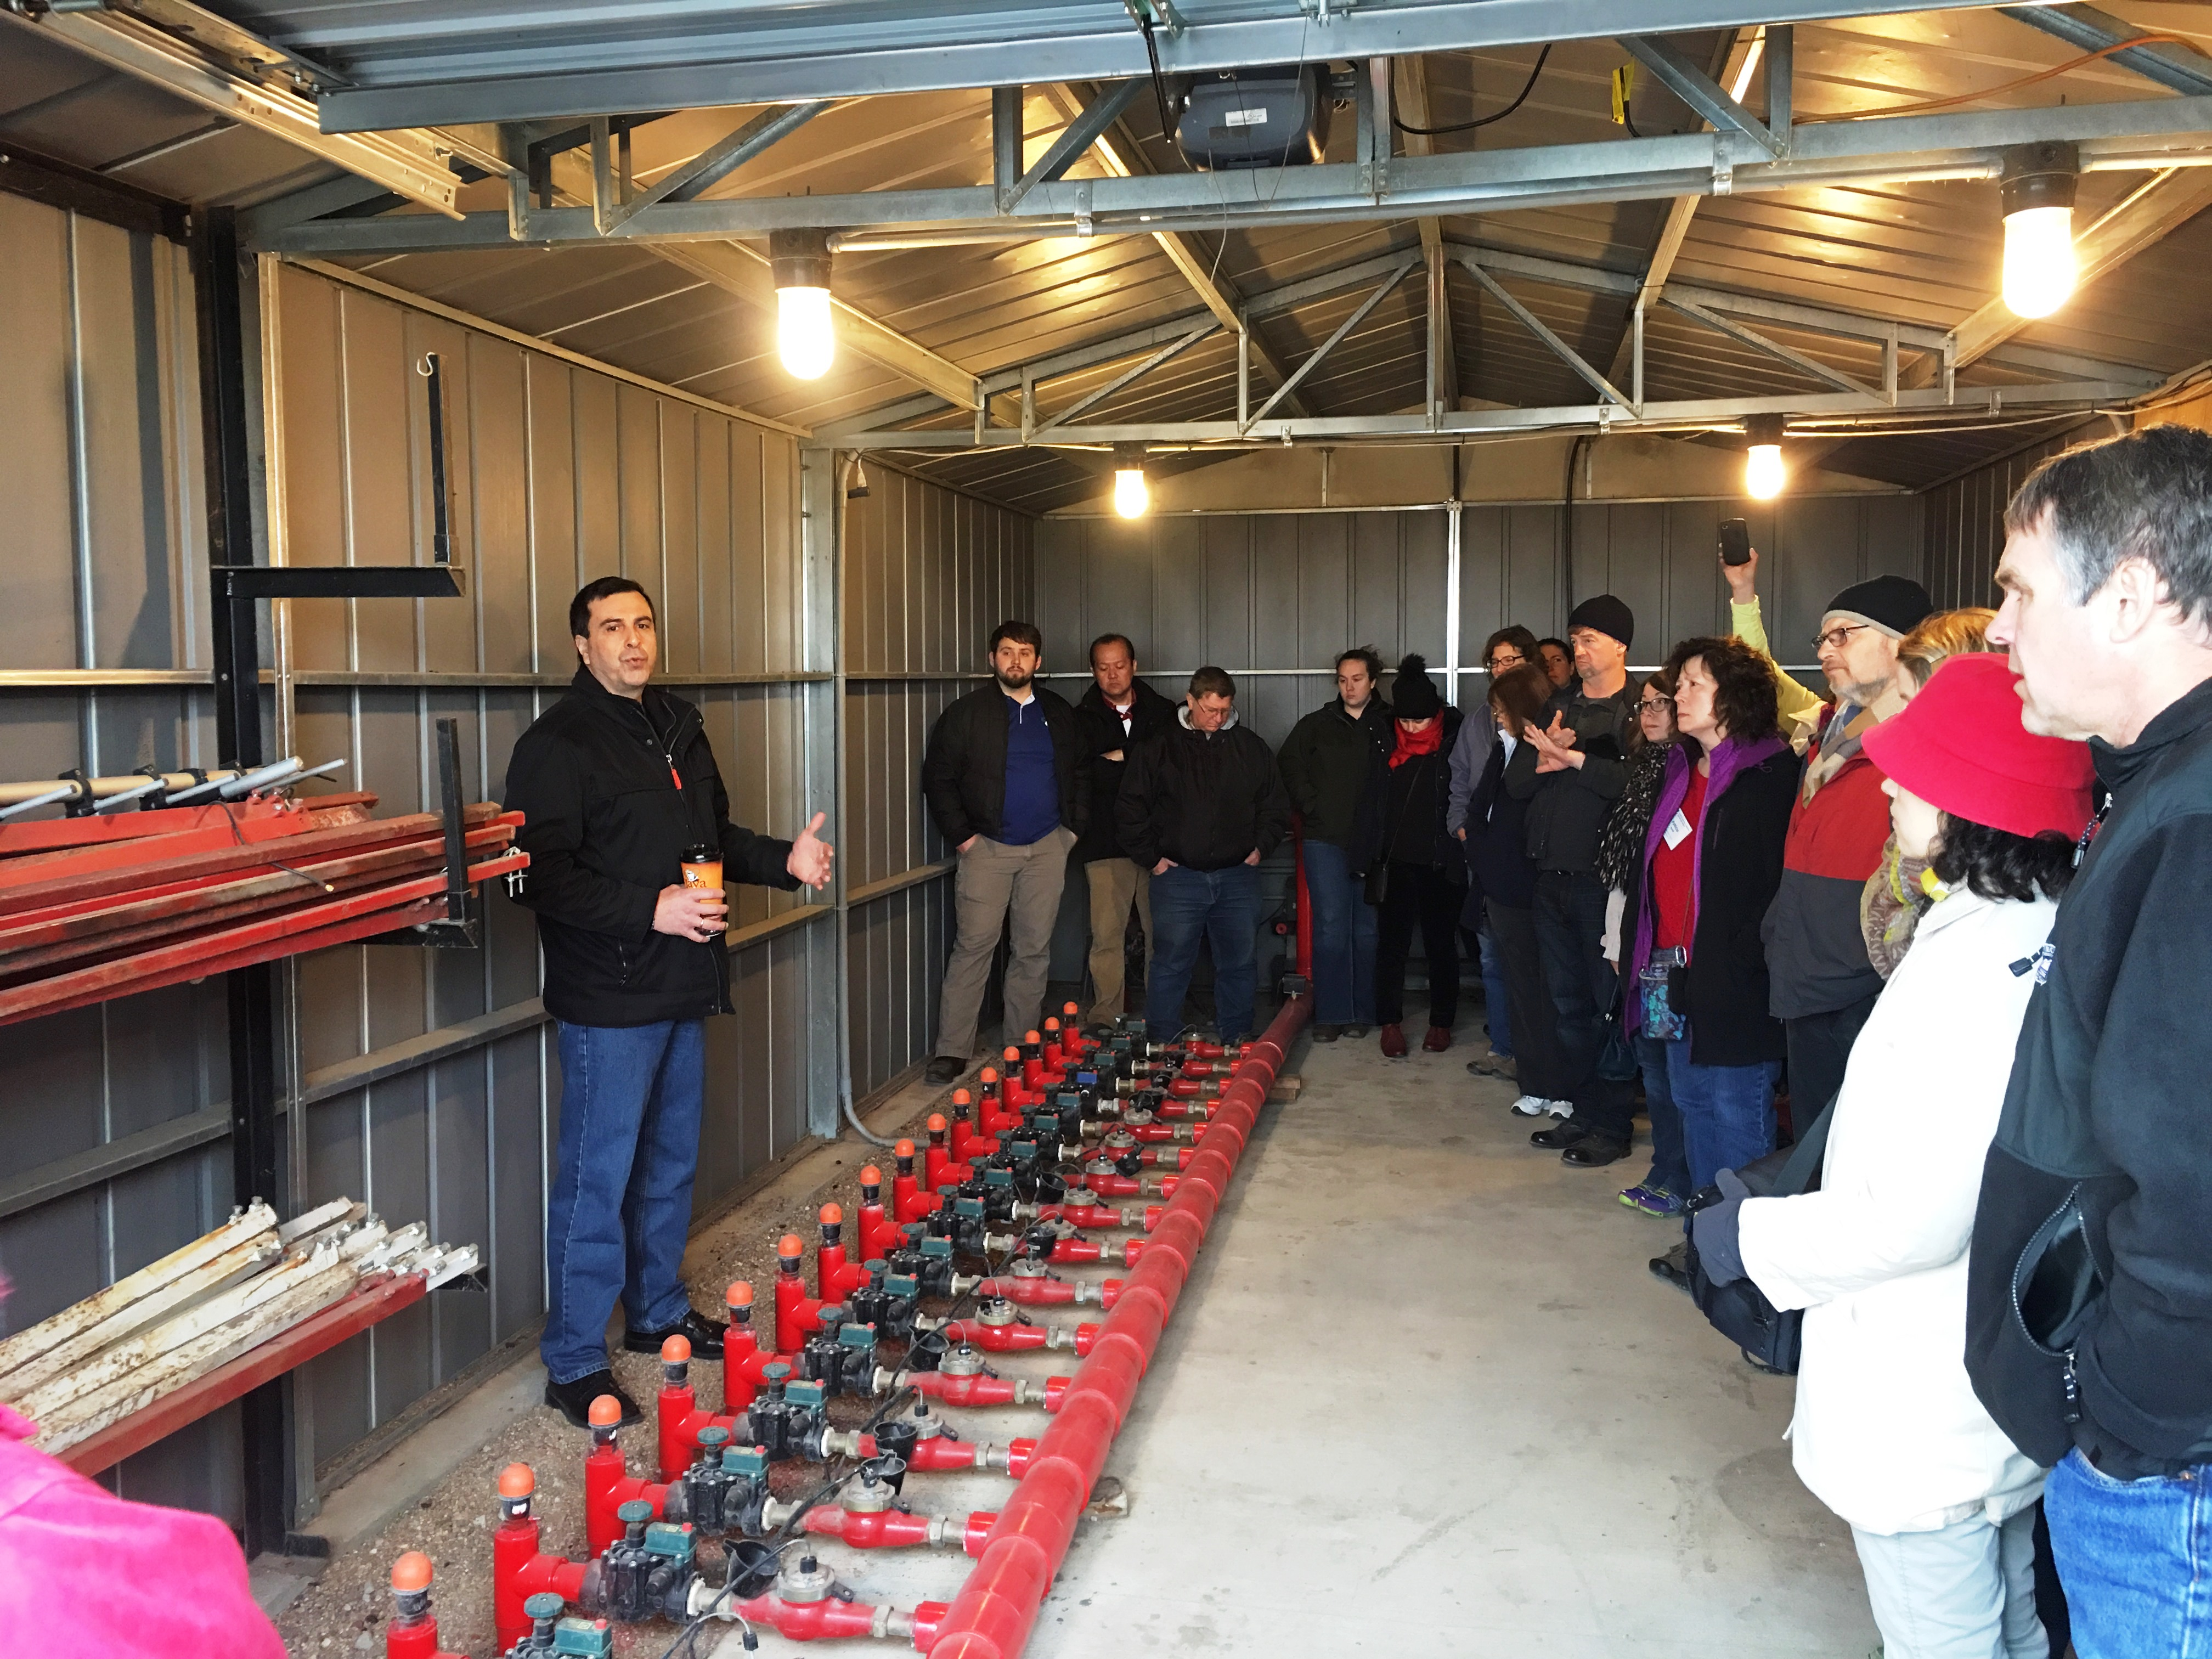 Professor Suat Irmak instructs others on the use of microirrigation technology as part of his award-winning research.